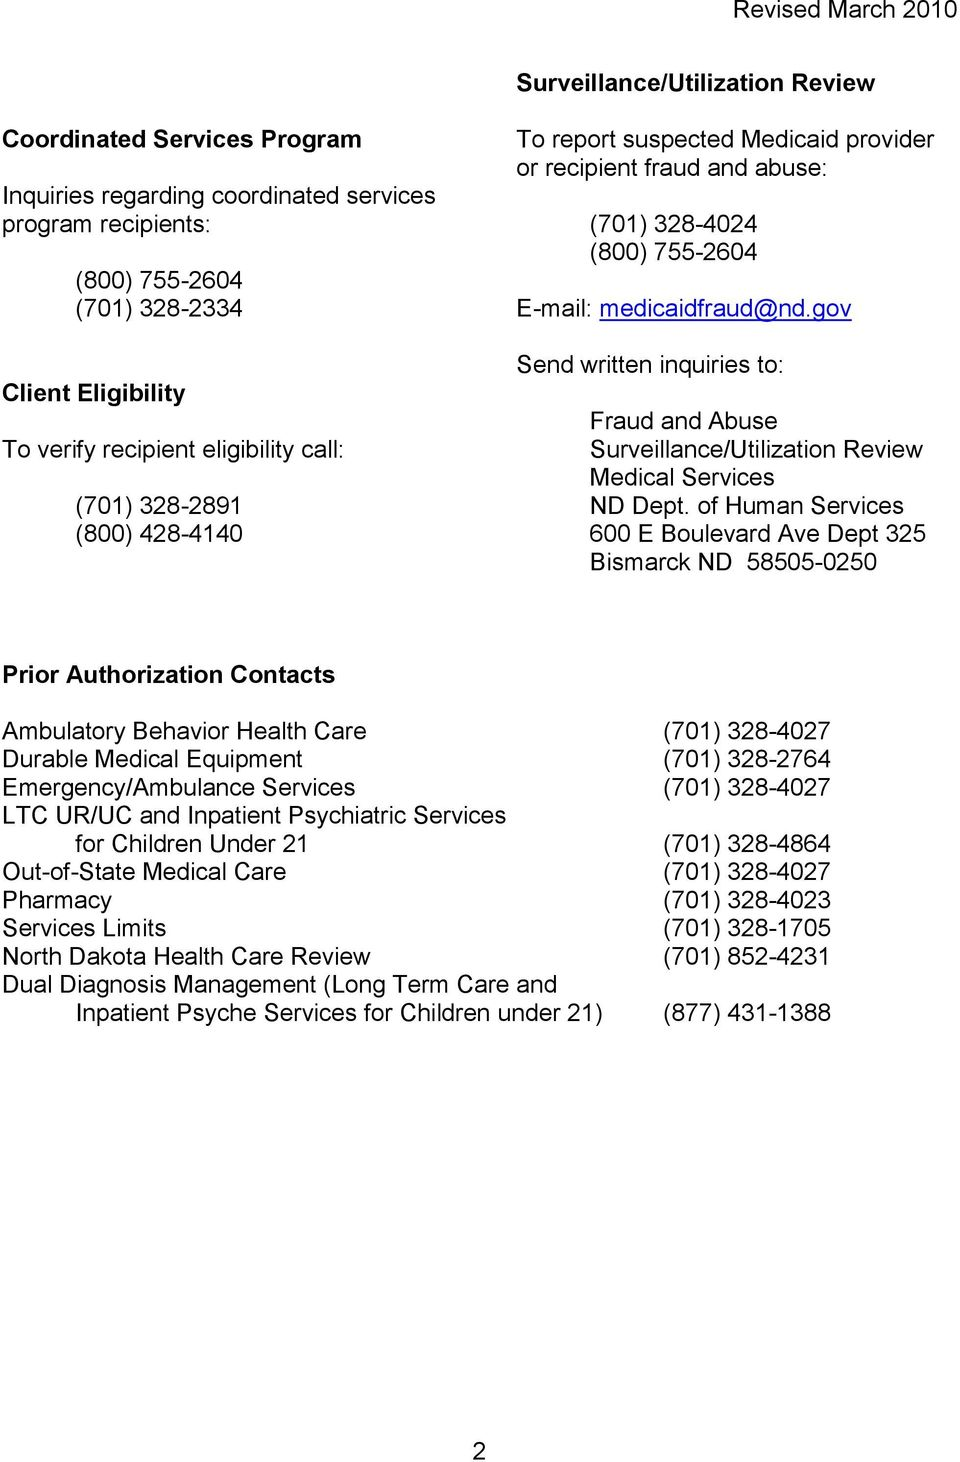 gov Send written inquiries to: Fraud and Abuse Surveillance/Utilization Review Medical Services ND Dept.